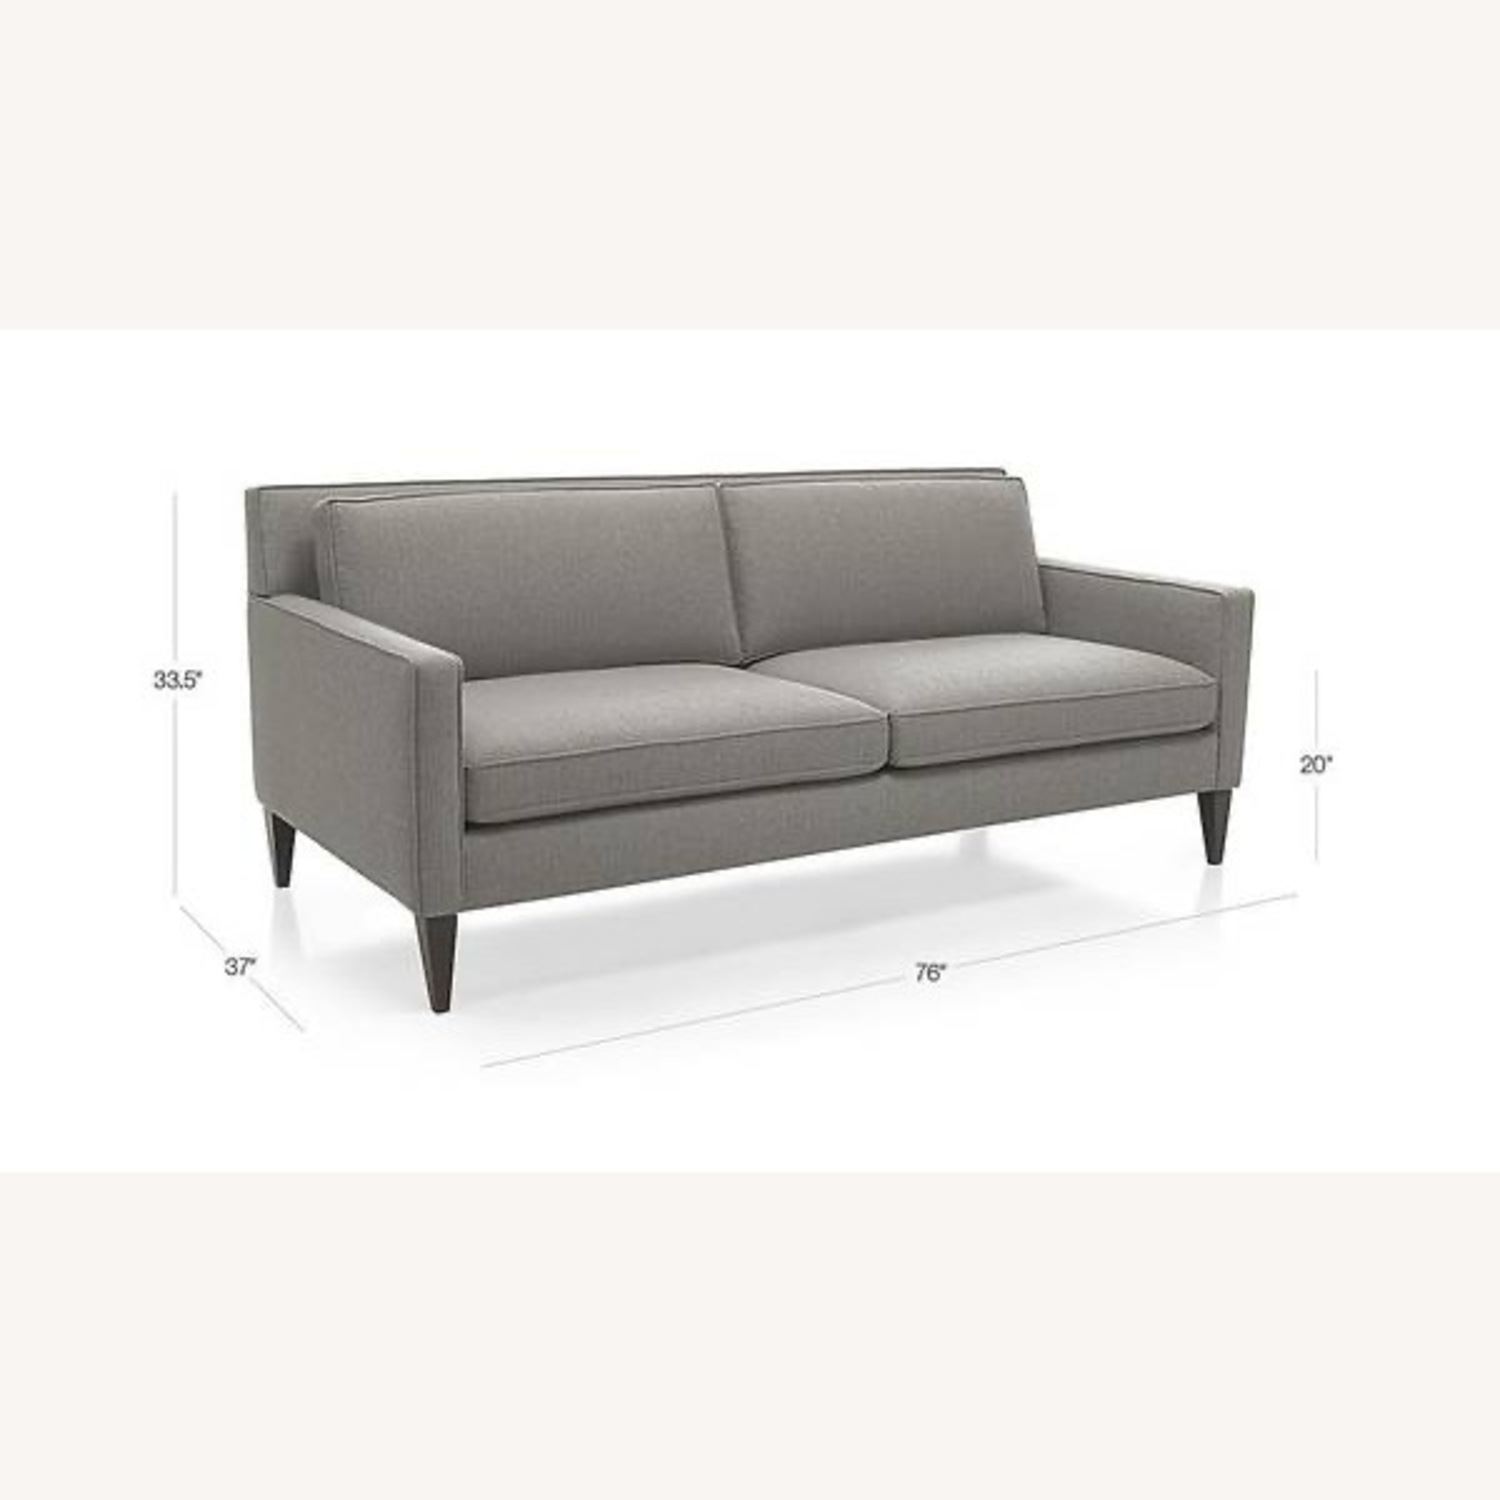 Crate & Barrel Rochelle Apartment Sofa - image-0